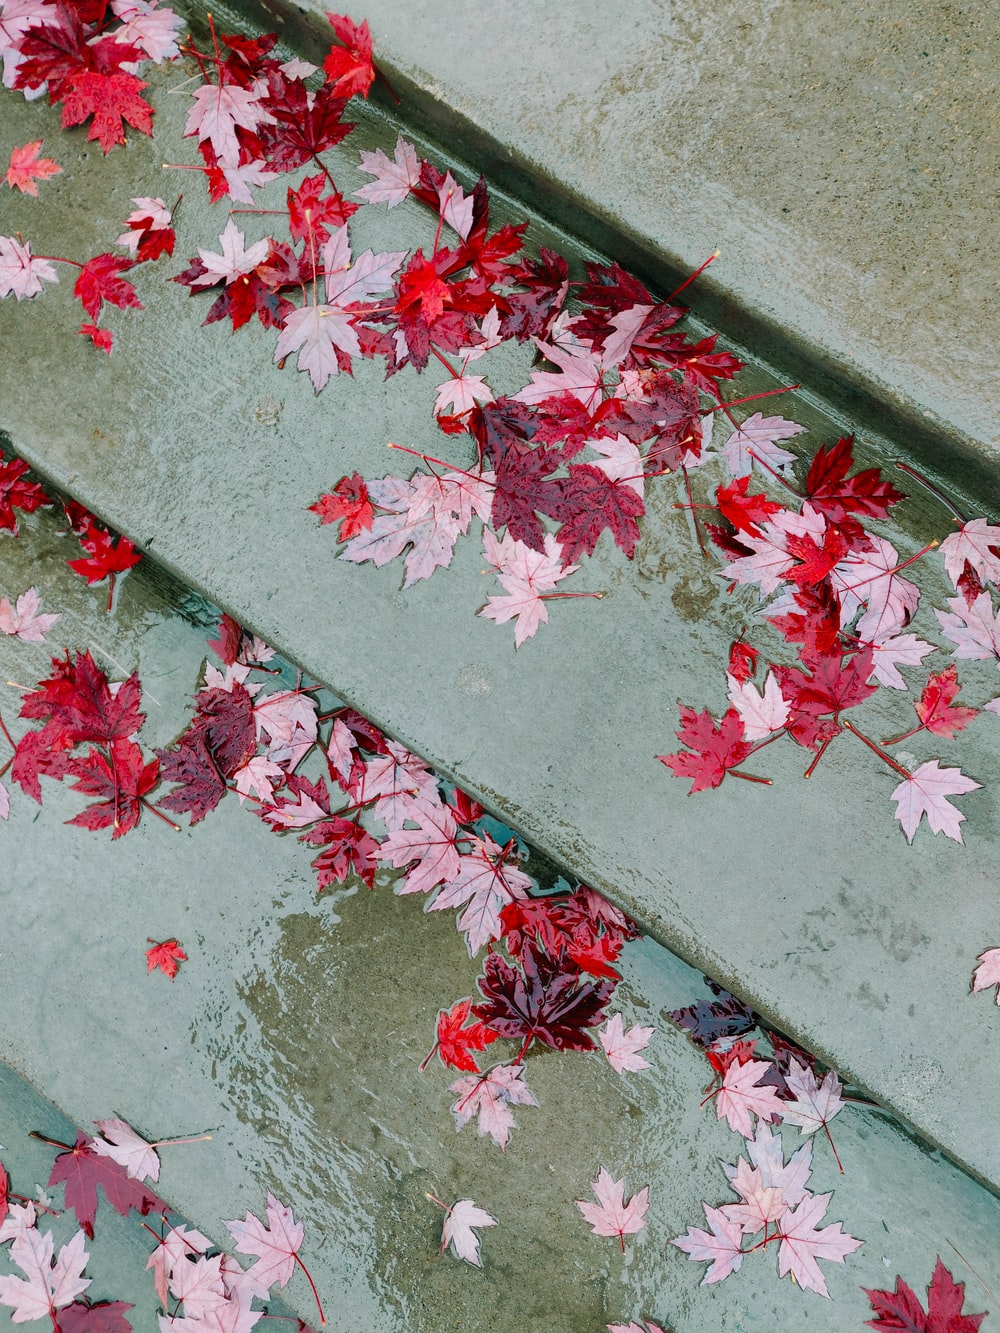 red and pink maple leaf